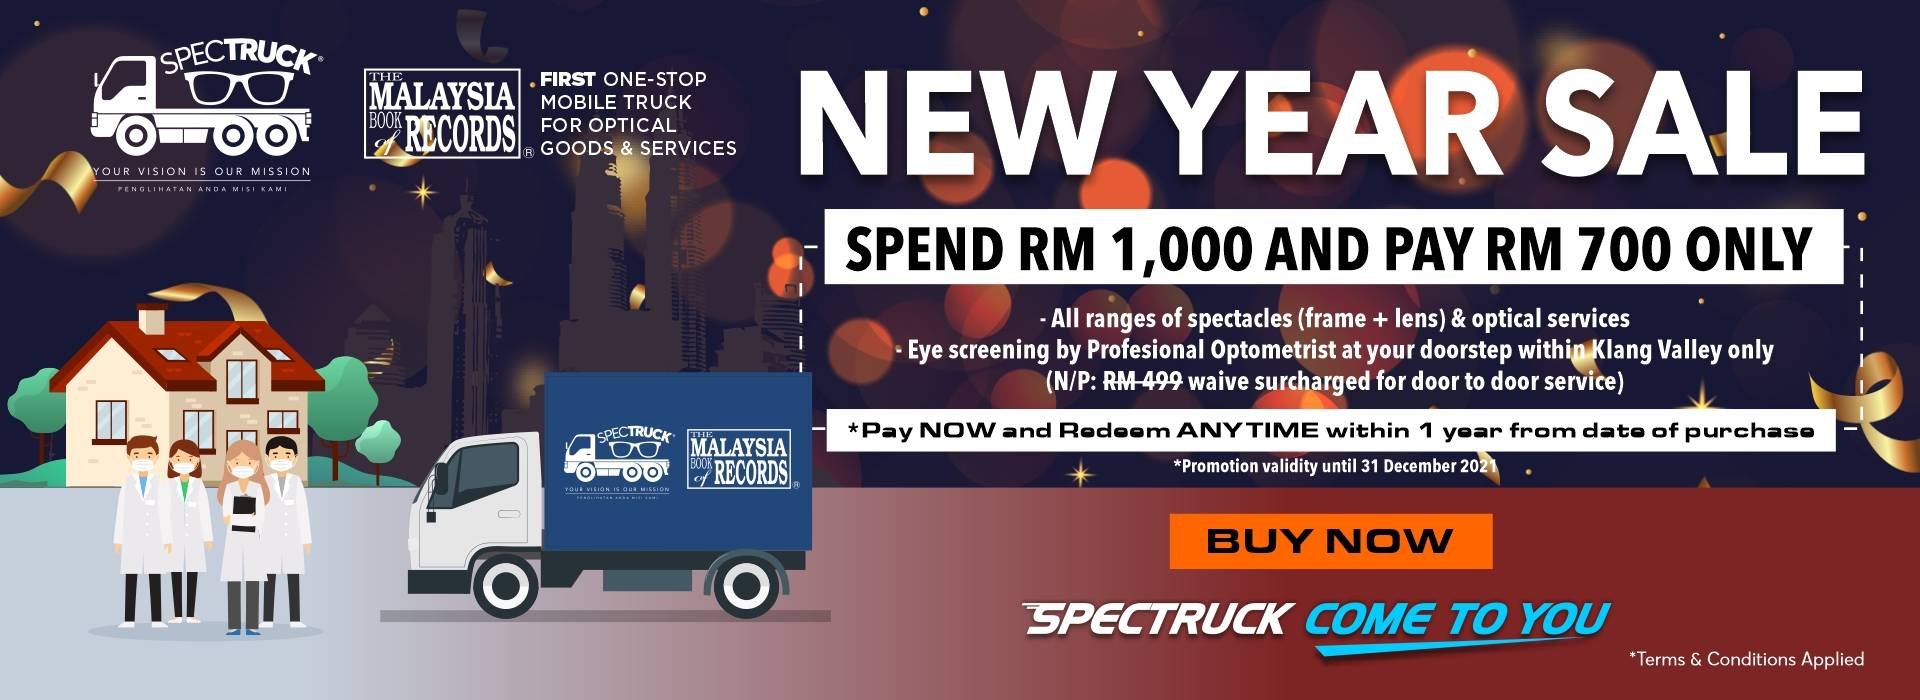 VOUCHER SPECTRUCK COME TO YOU